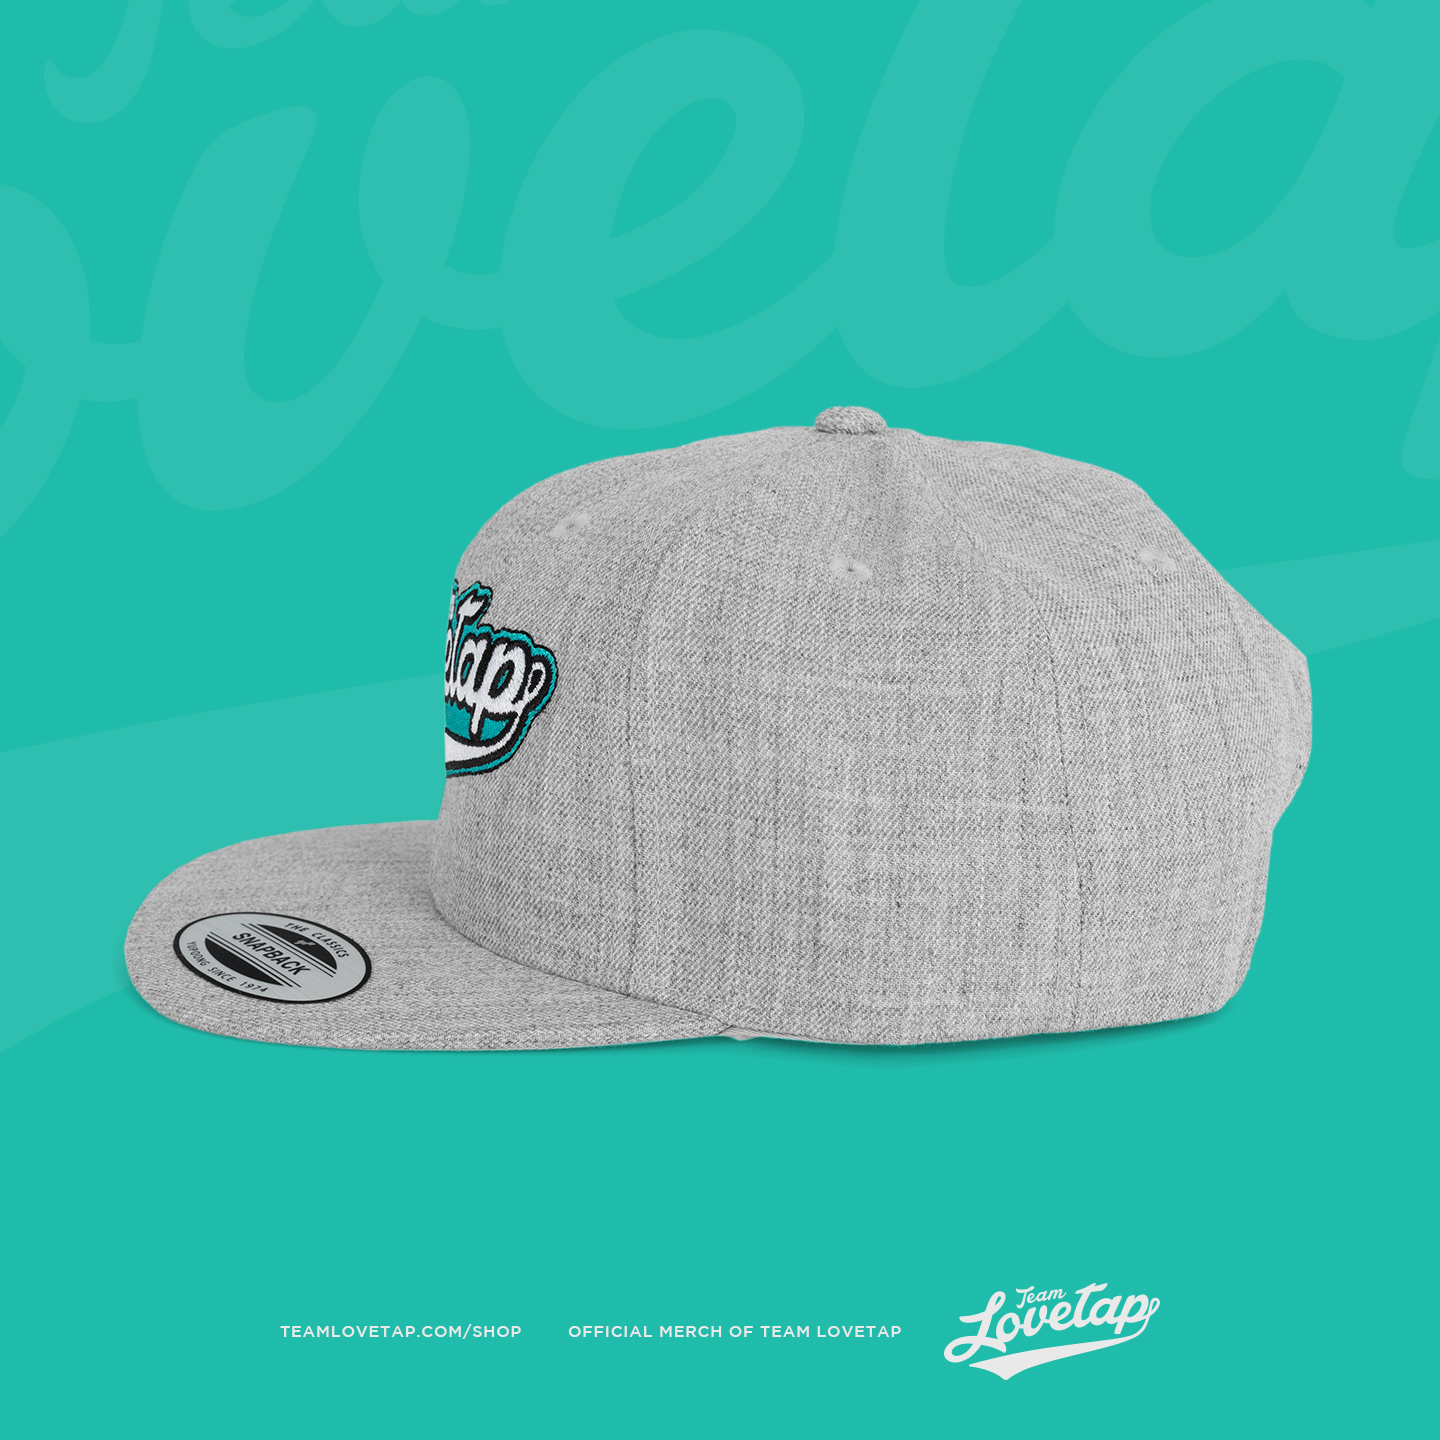 snapback_lightgray_teamlovetap_03.jpg